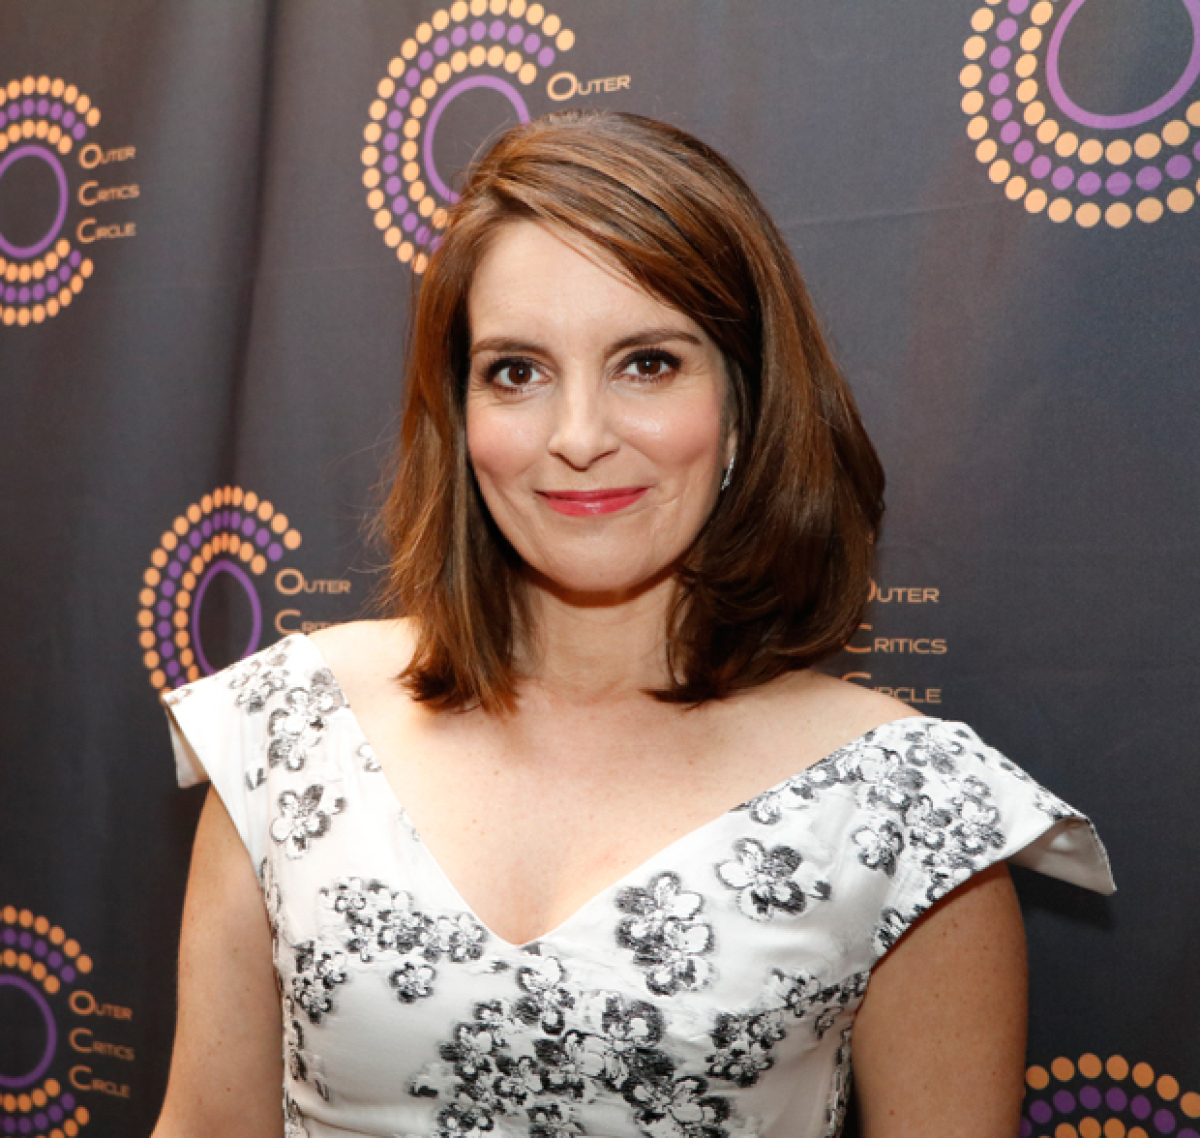 See Tina Fey, Stephanie J. Block, and More at the Outer Critics Circle Awards Gala | TheaterMania